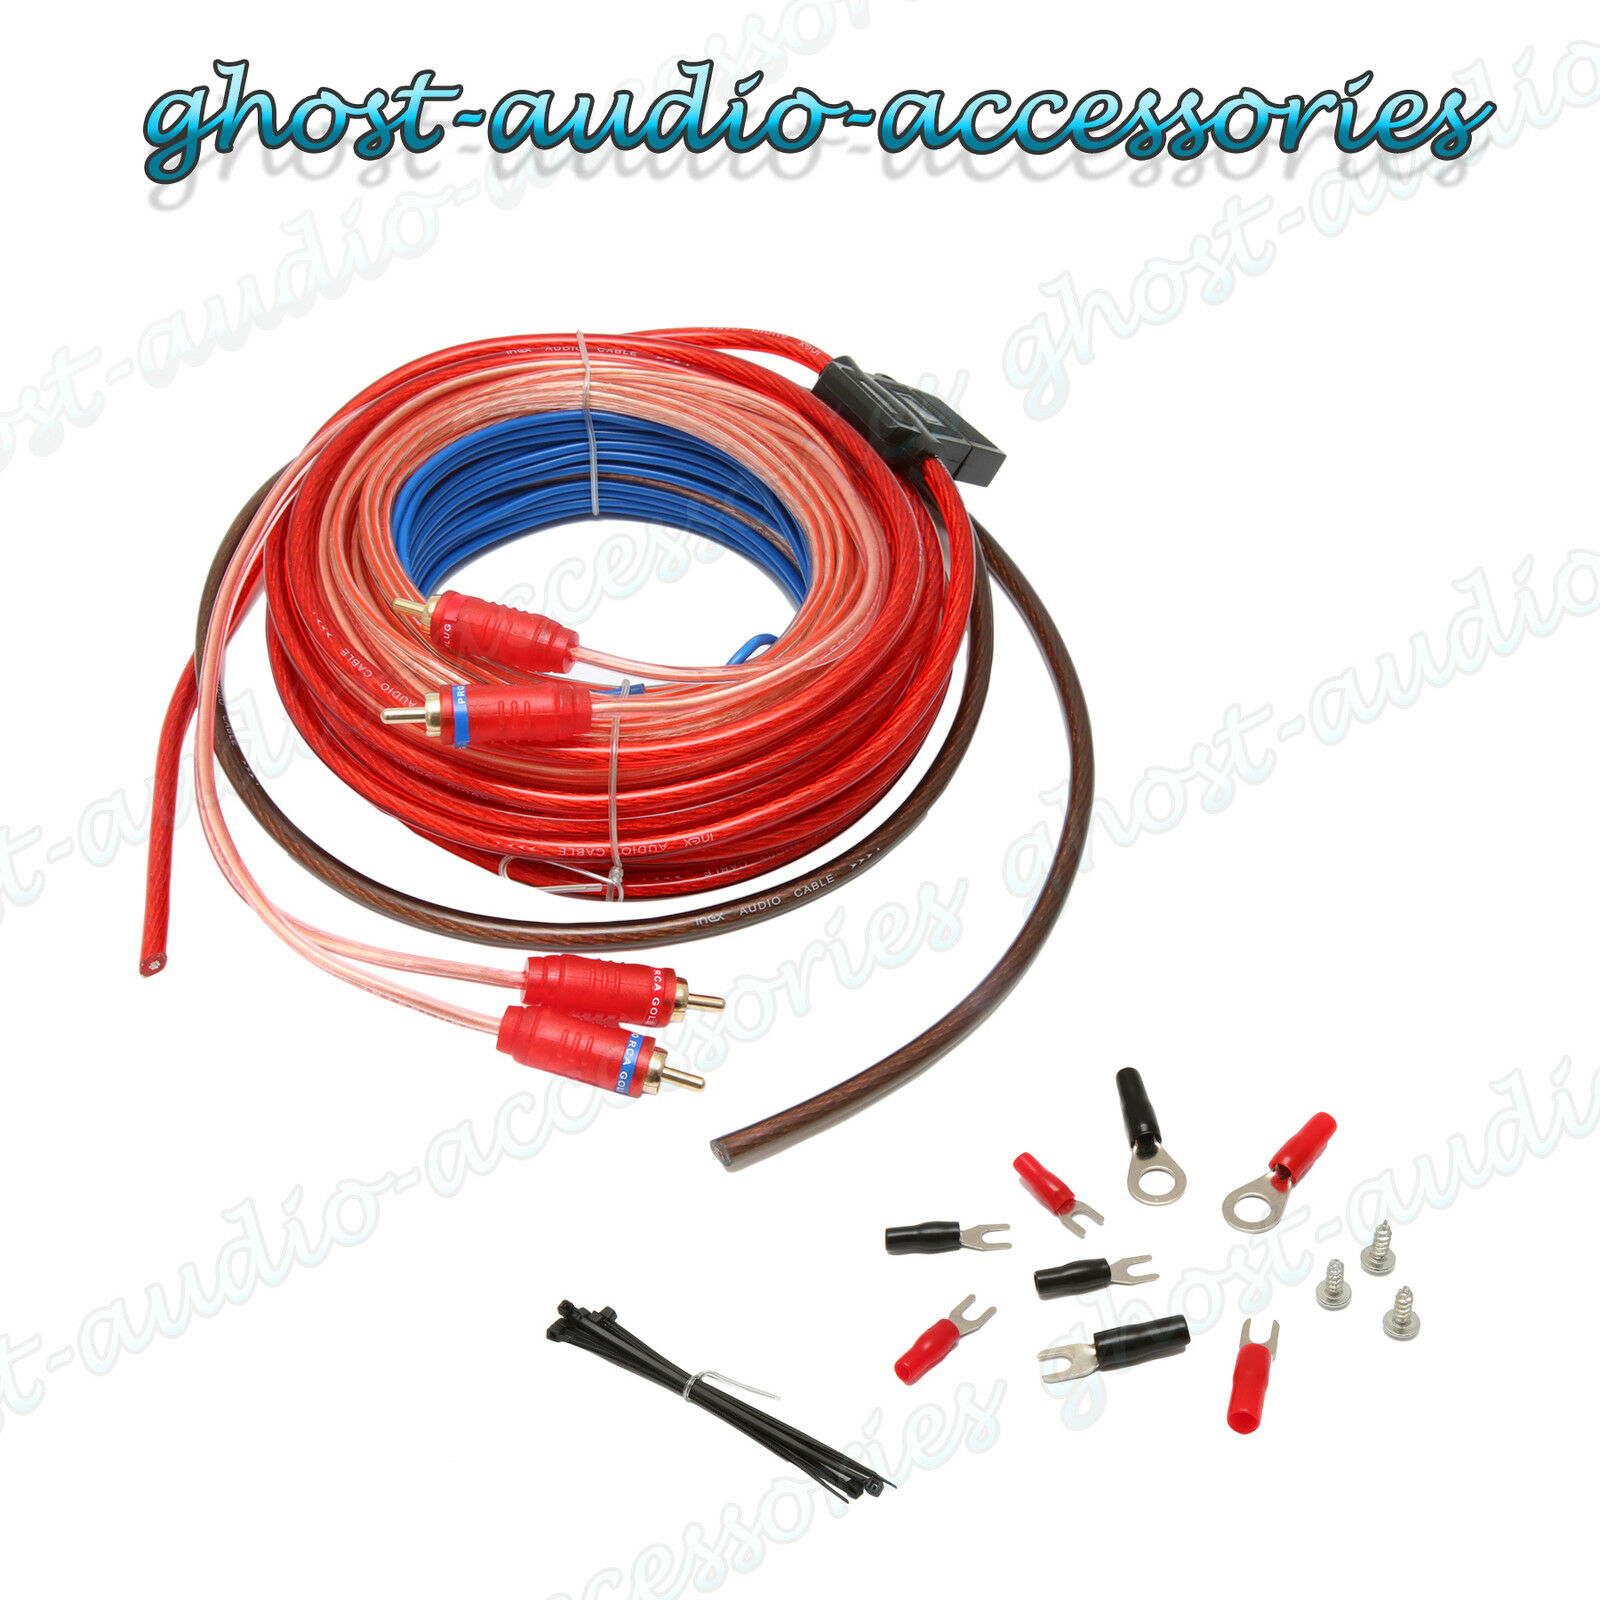 Details about 10 awg gauge Amplifier Amp Wiring Kit for Edge Vibe car on